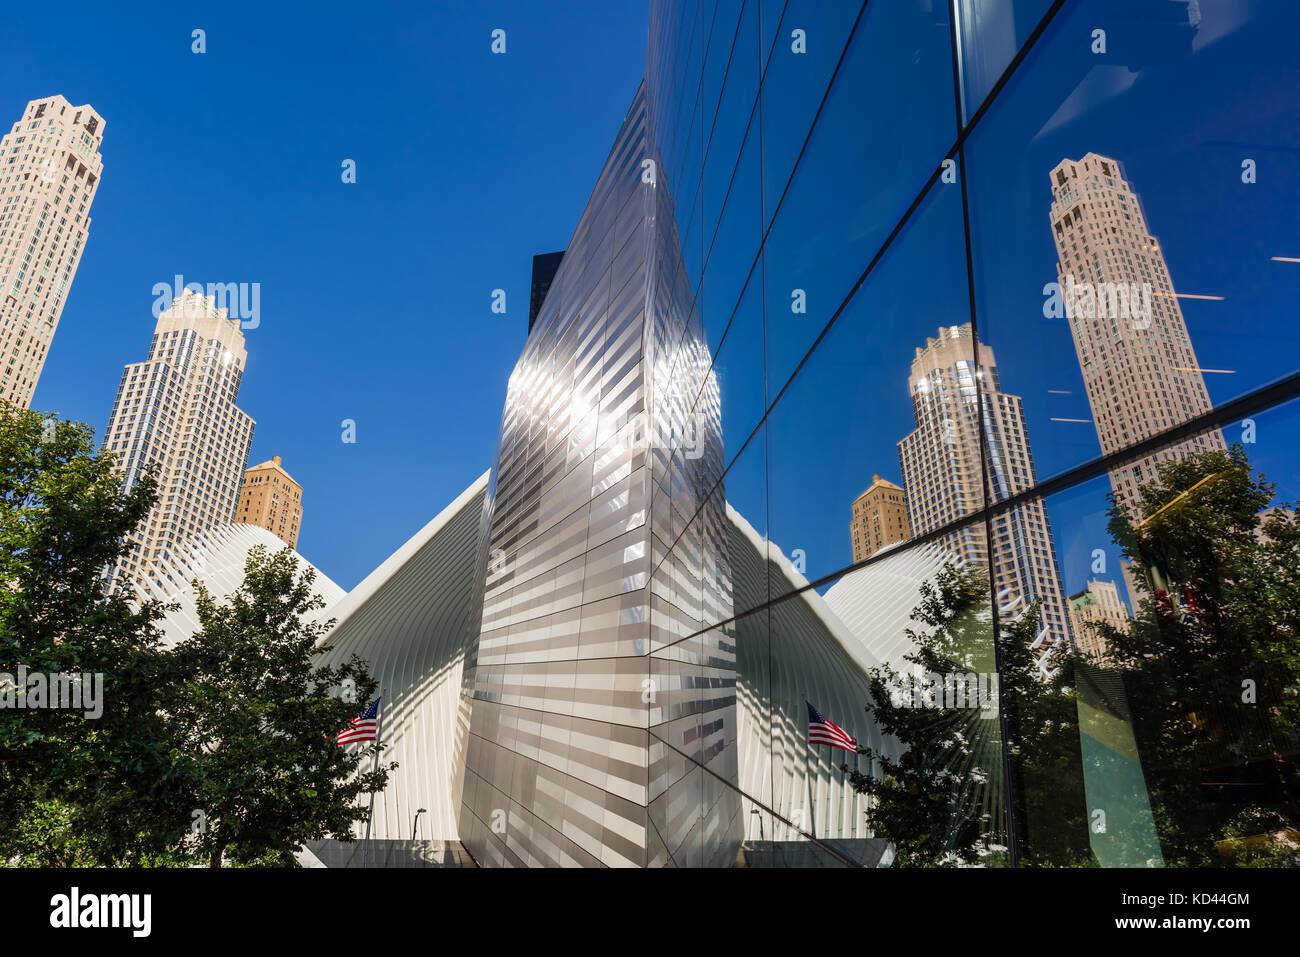 Glass reflection of the Oculus and skyscrapers at the 9/11 Memorial & Museum. Lower Manhattan, Financial District, - Stock Image